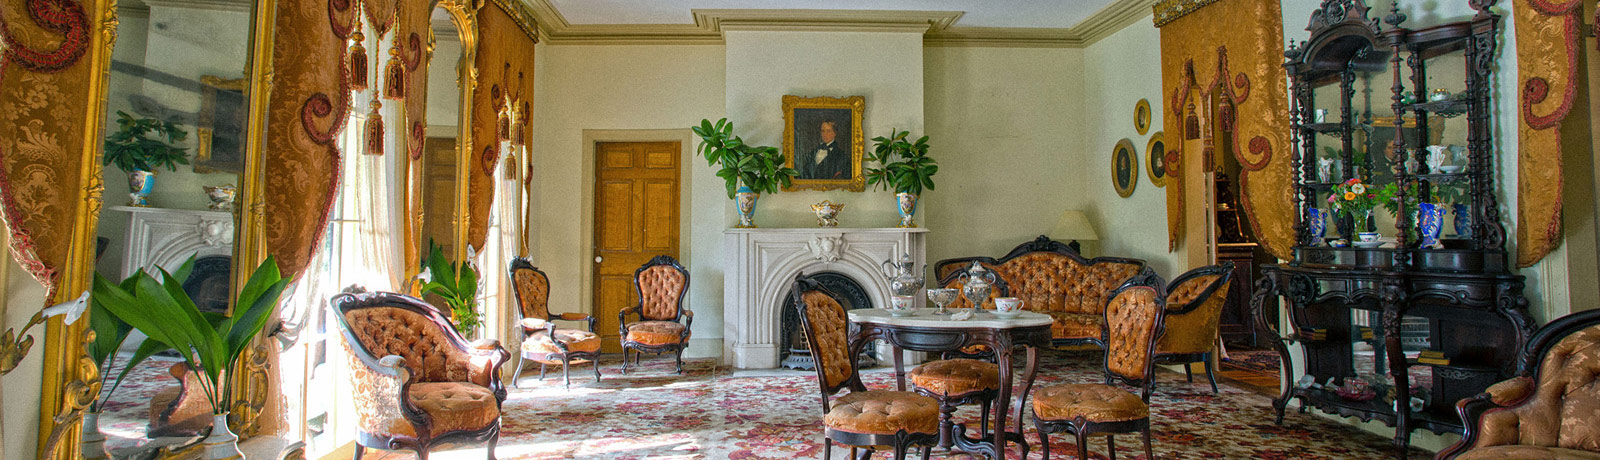 The permanent installation of antebellum furnishings honors all lives at Louisiana's Greenwood Plantation.